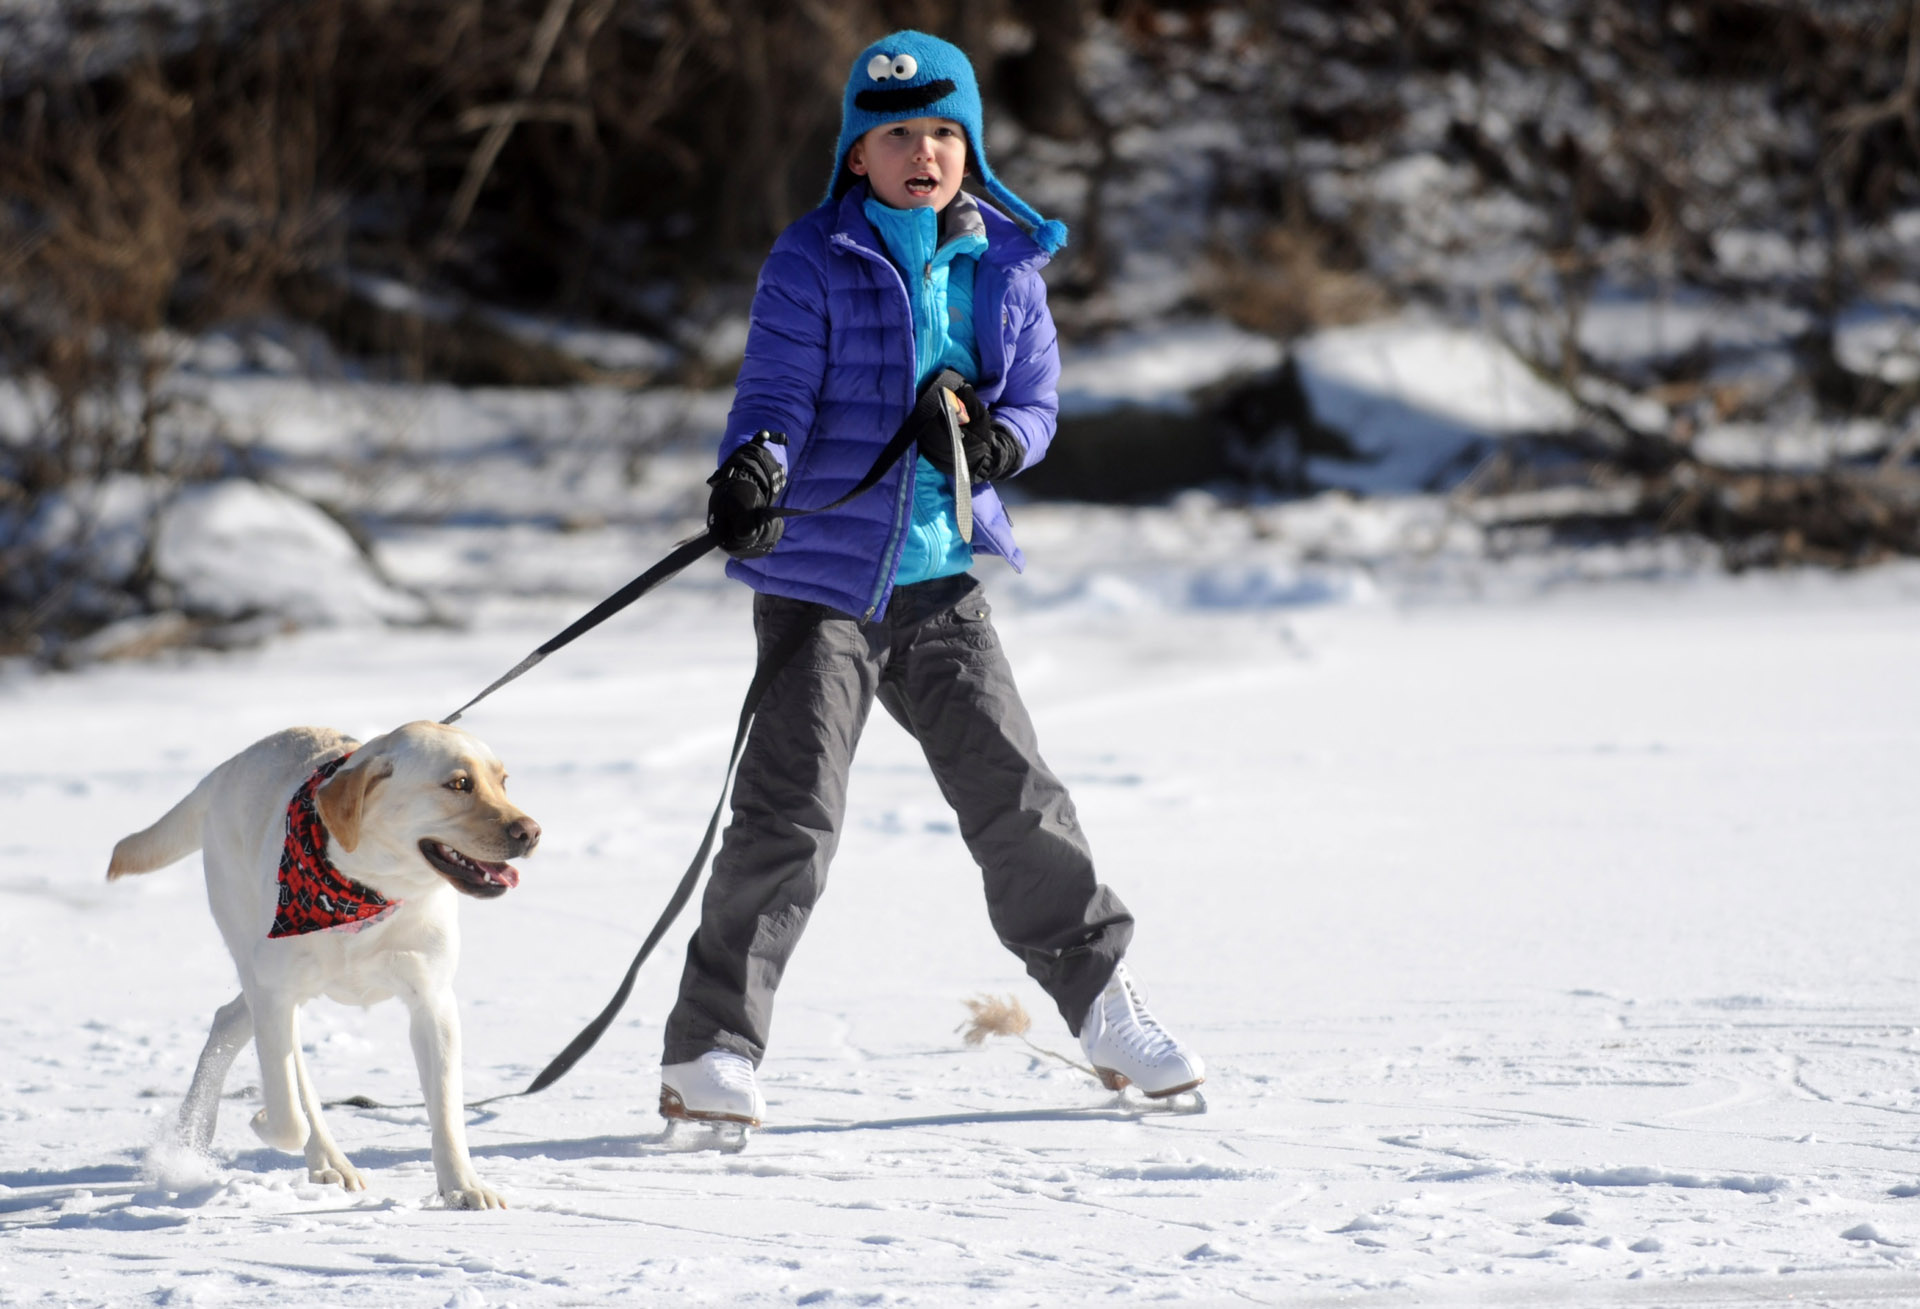 Mimi Sue Novak, 8, gets a pull from Millie as she skates on Gorham's Pond in Darien on Saturday, January 27, 2013.